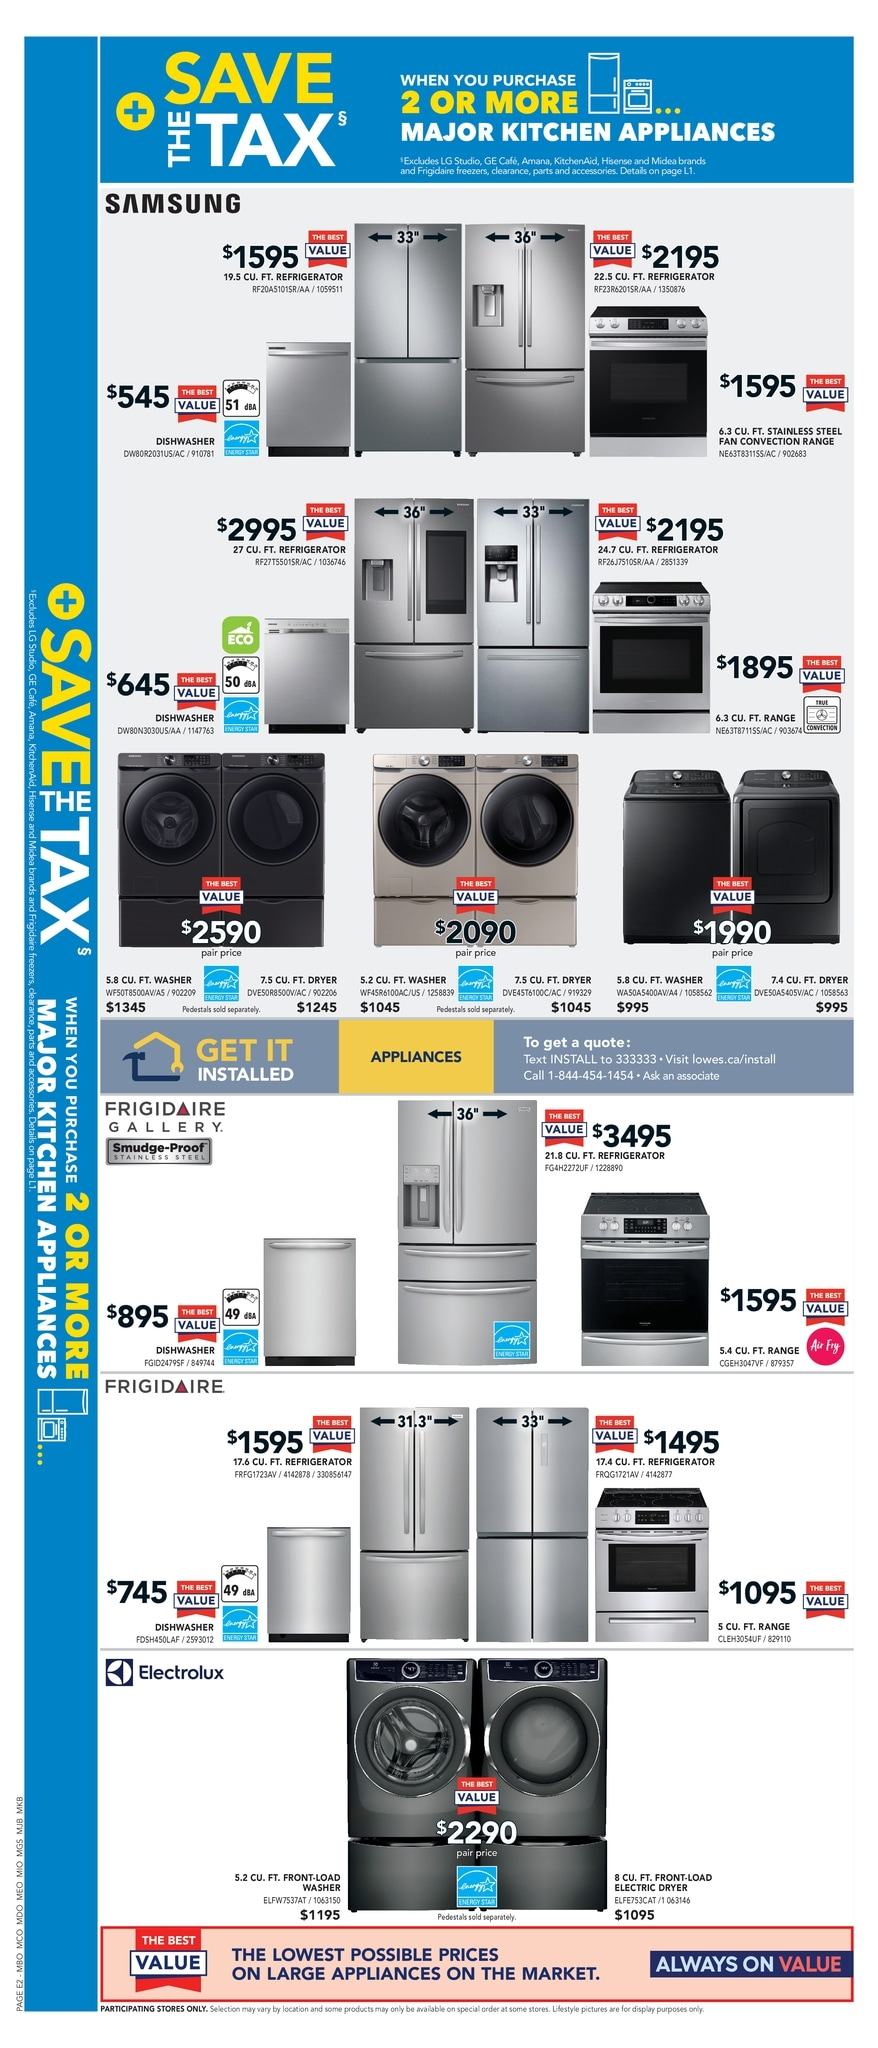 Lowe's - Weekly Flyer Specials - Page 8